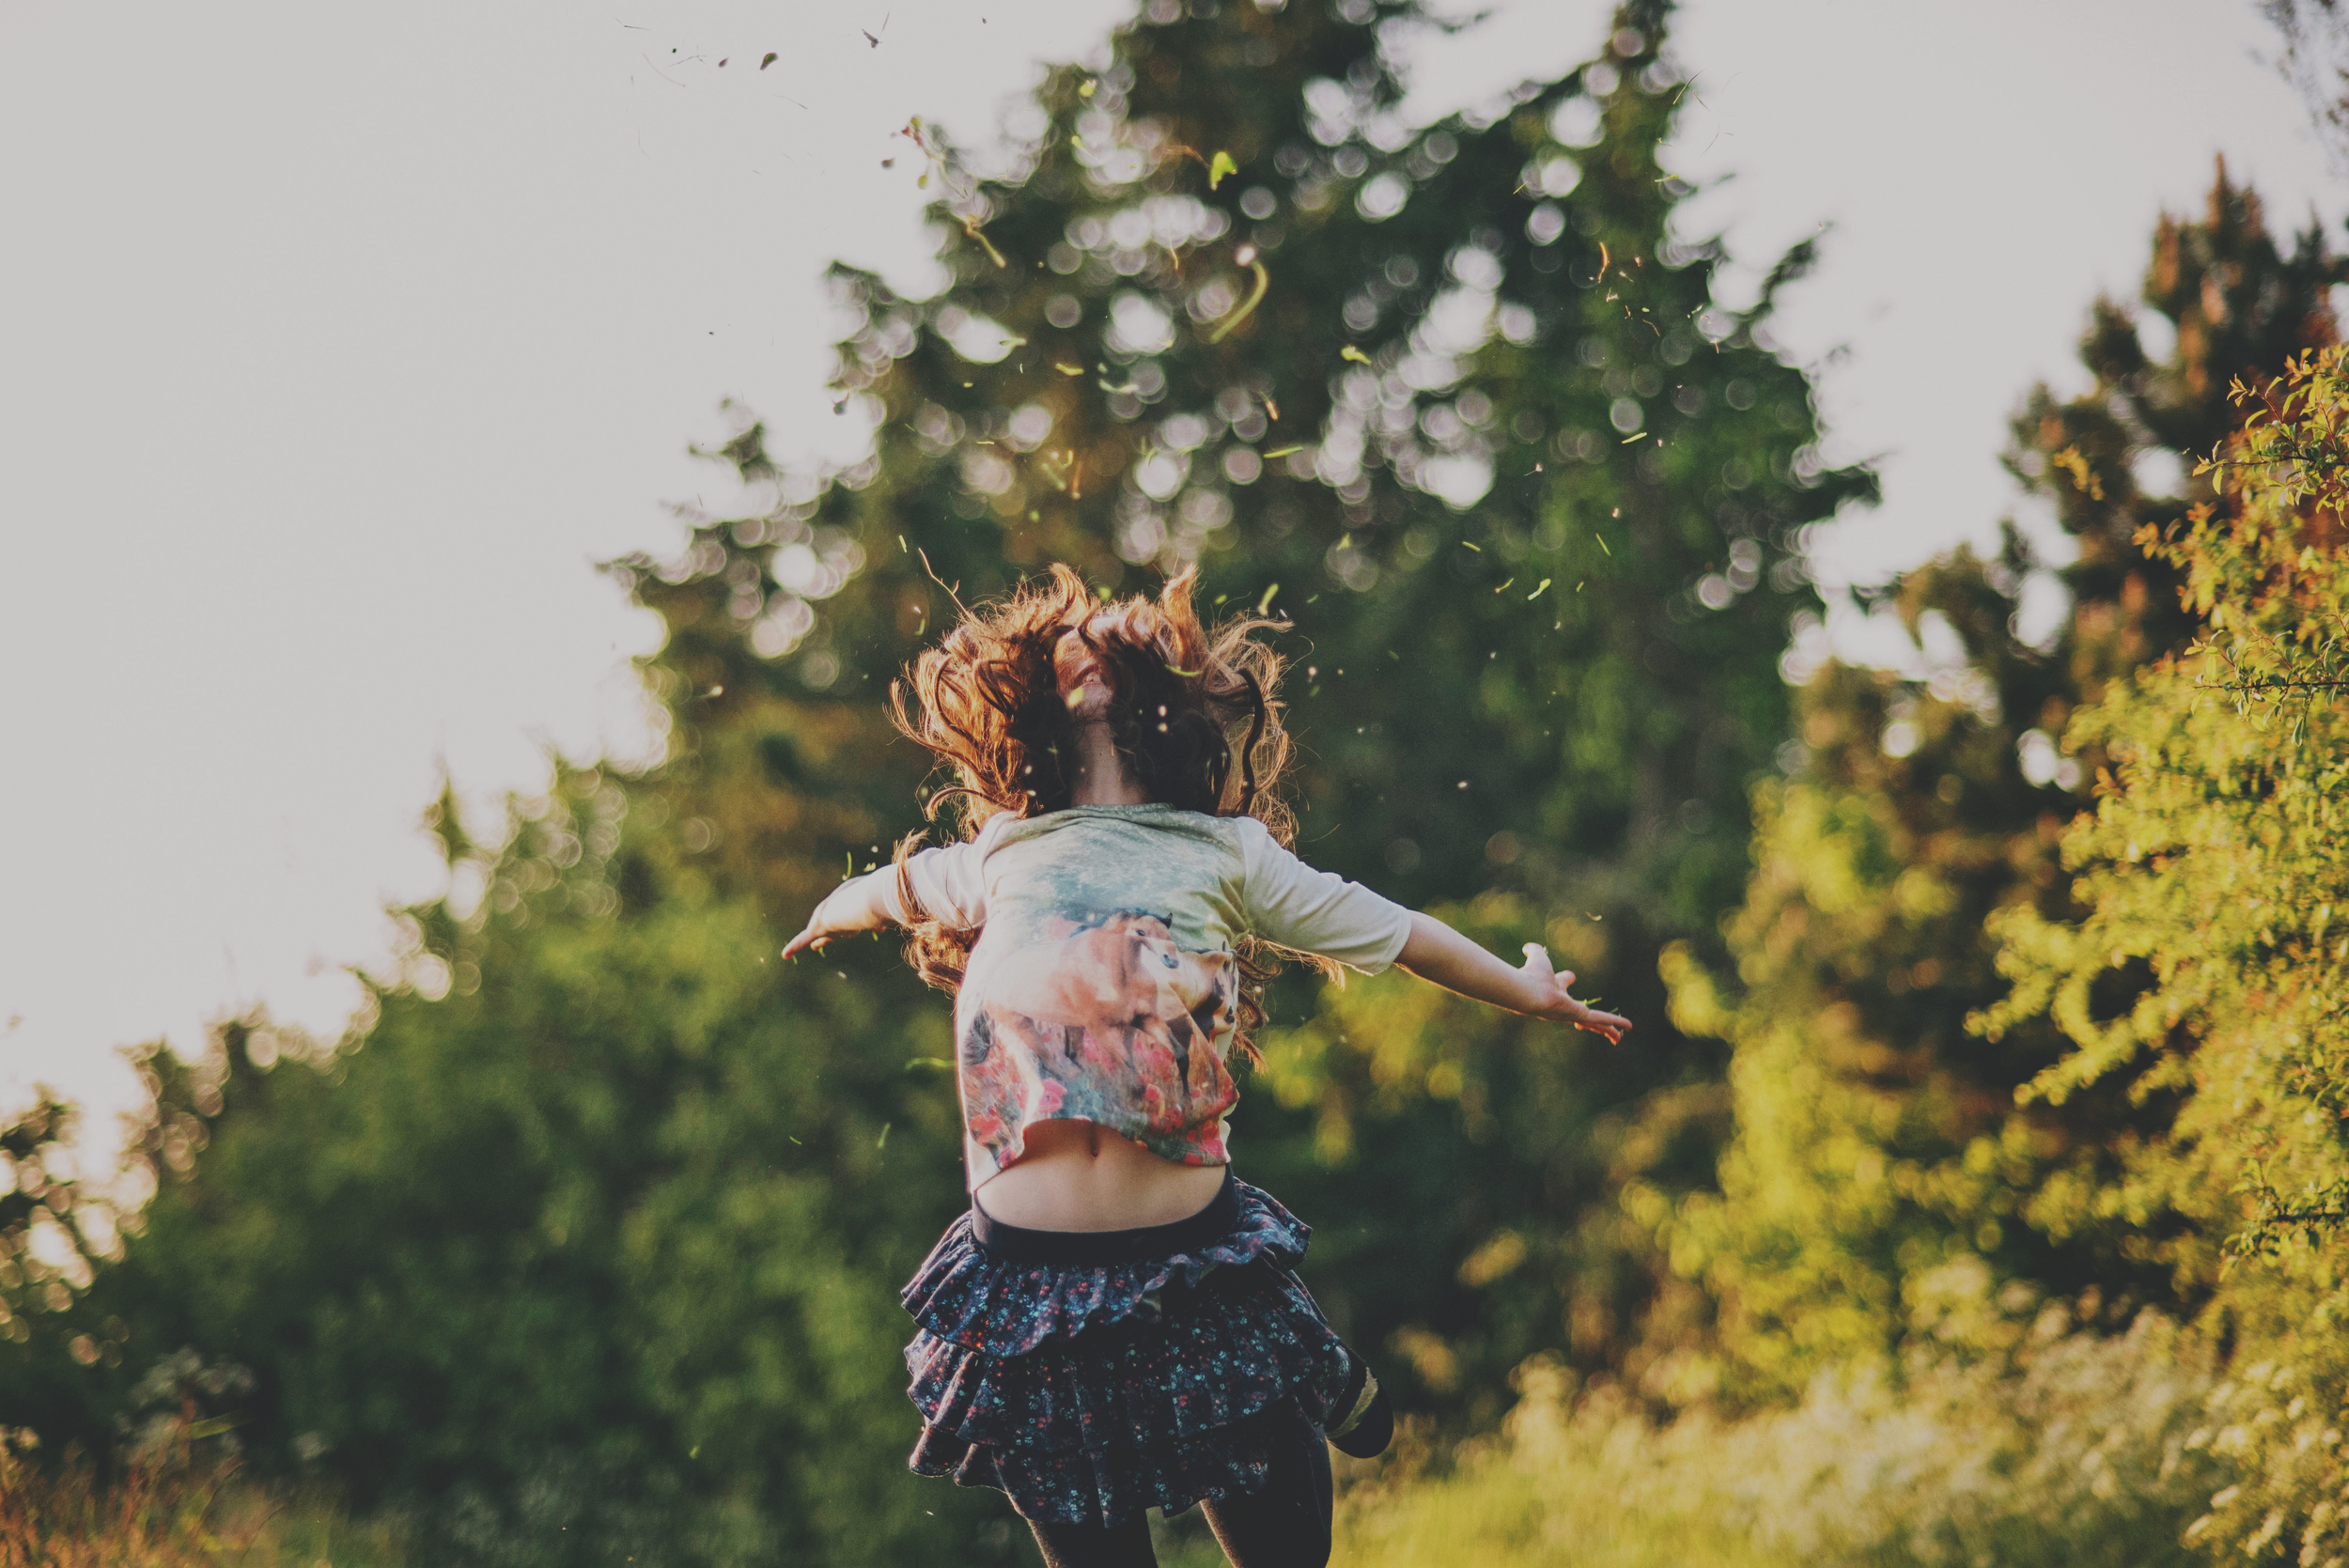 Young girl throws grass and jumps in air Documentary and Lifestyle Portrait Photographer